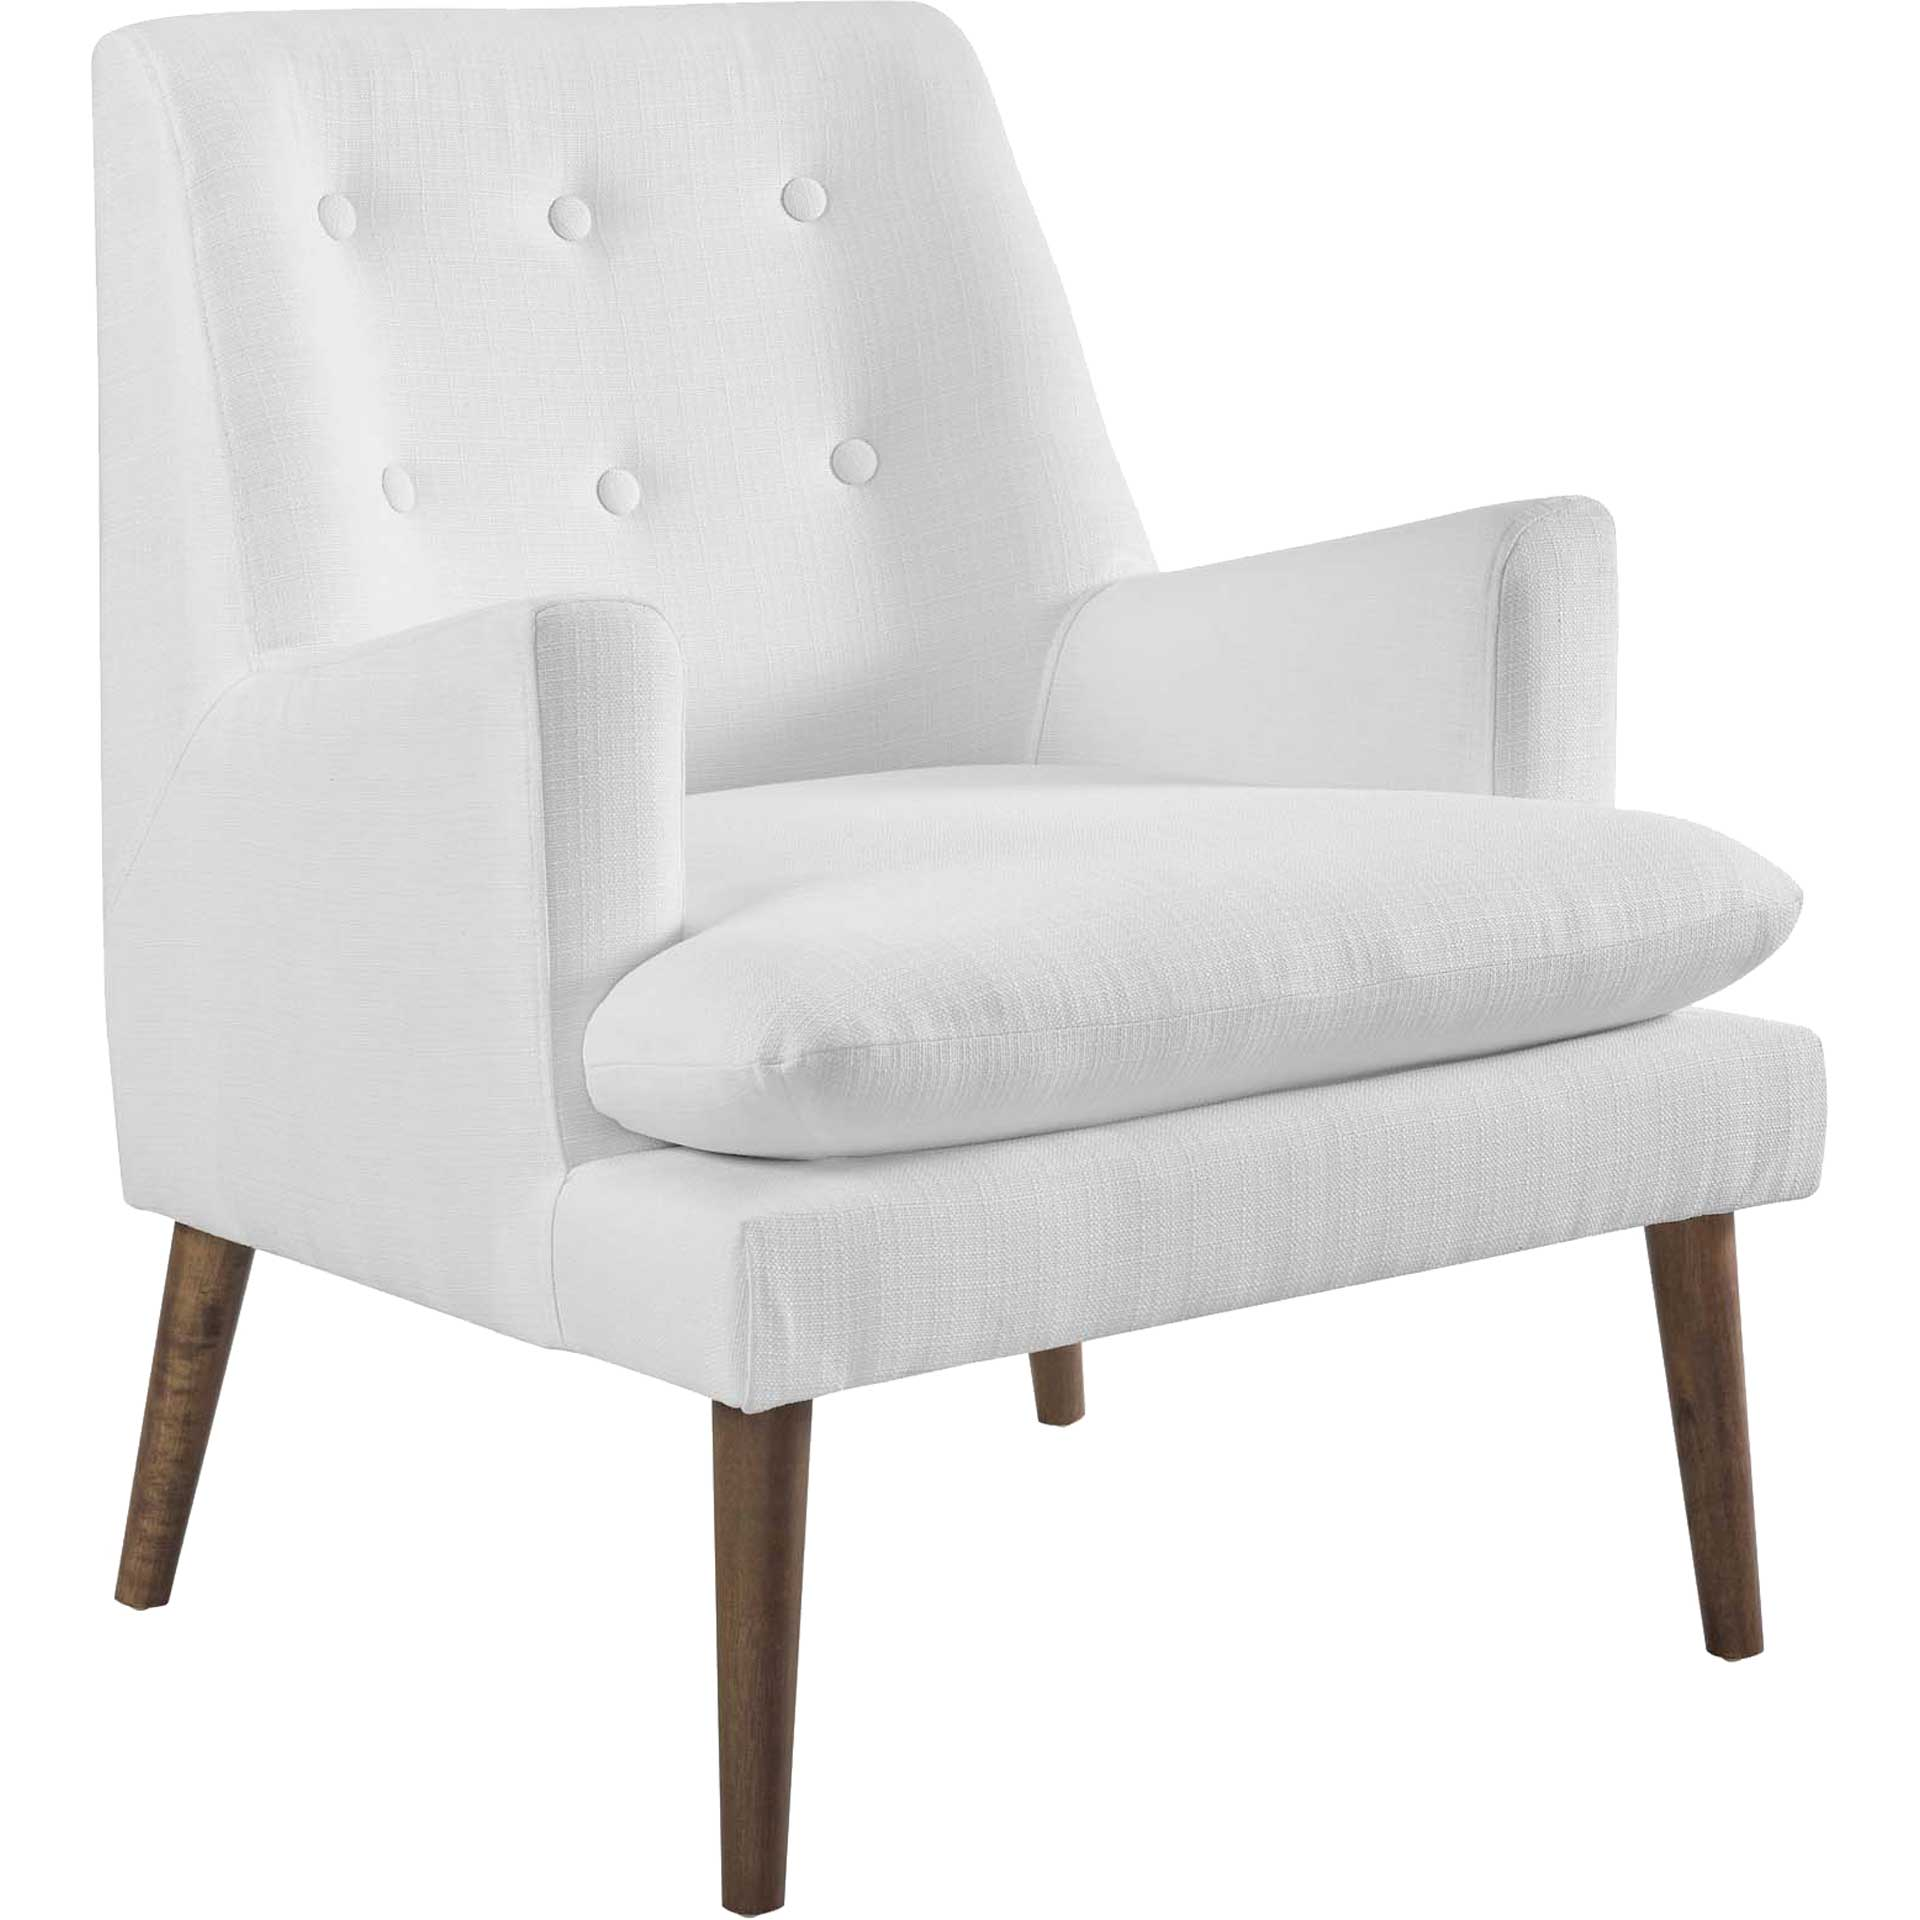 Lucas Upholstered Lounge Chair White